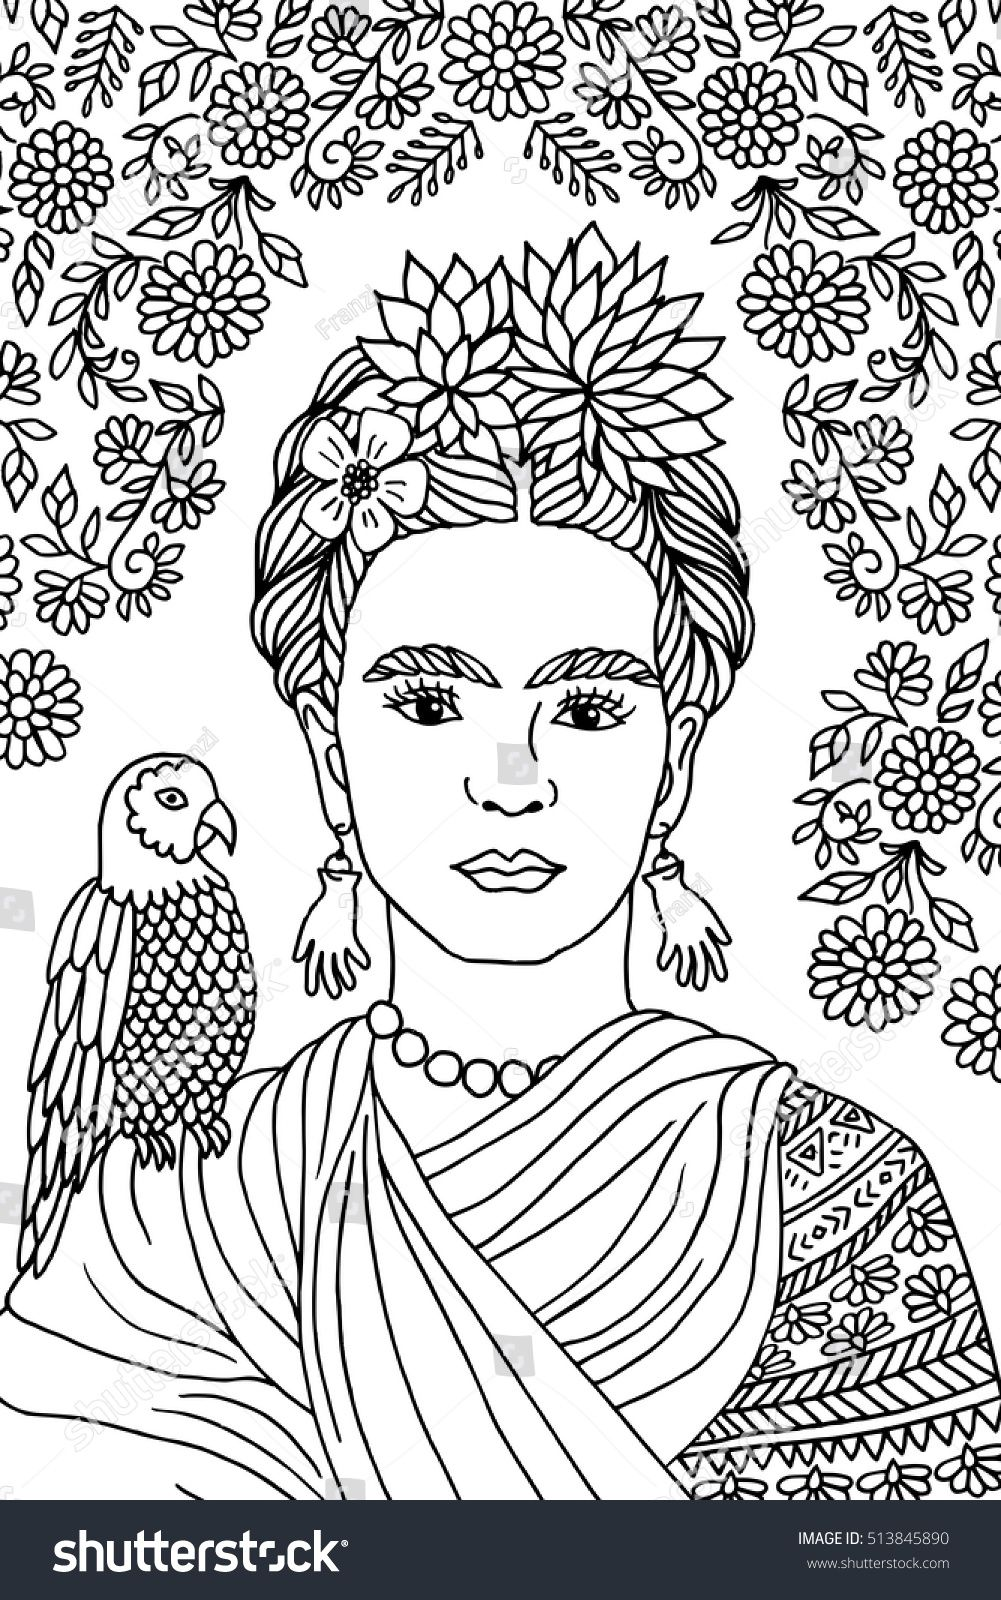 Hand drawn portrait of Frida Kahlo, with floral background